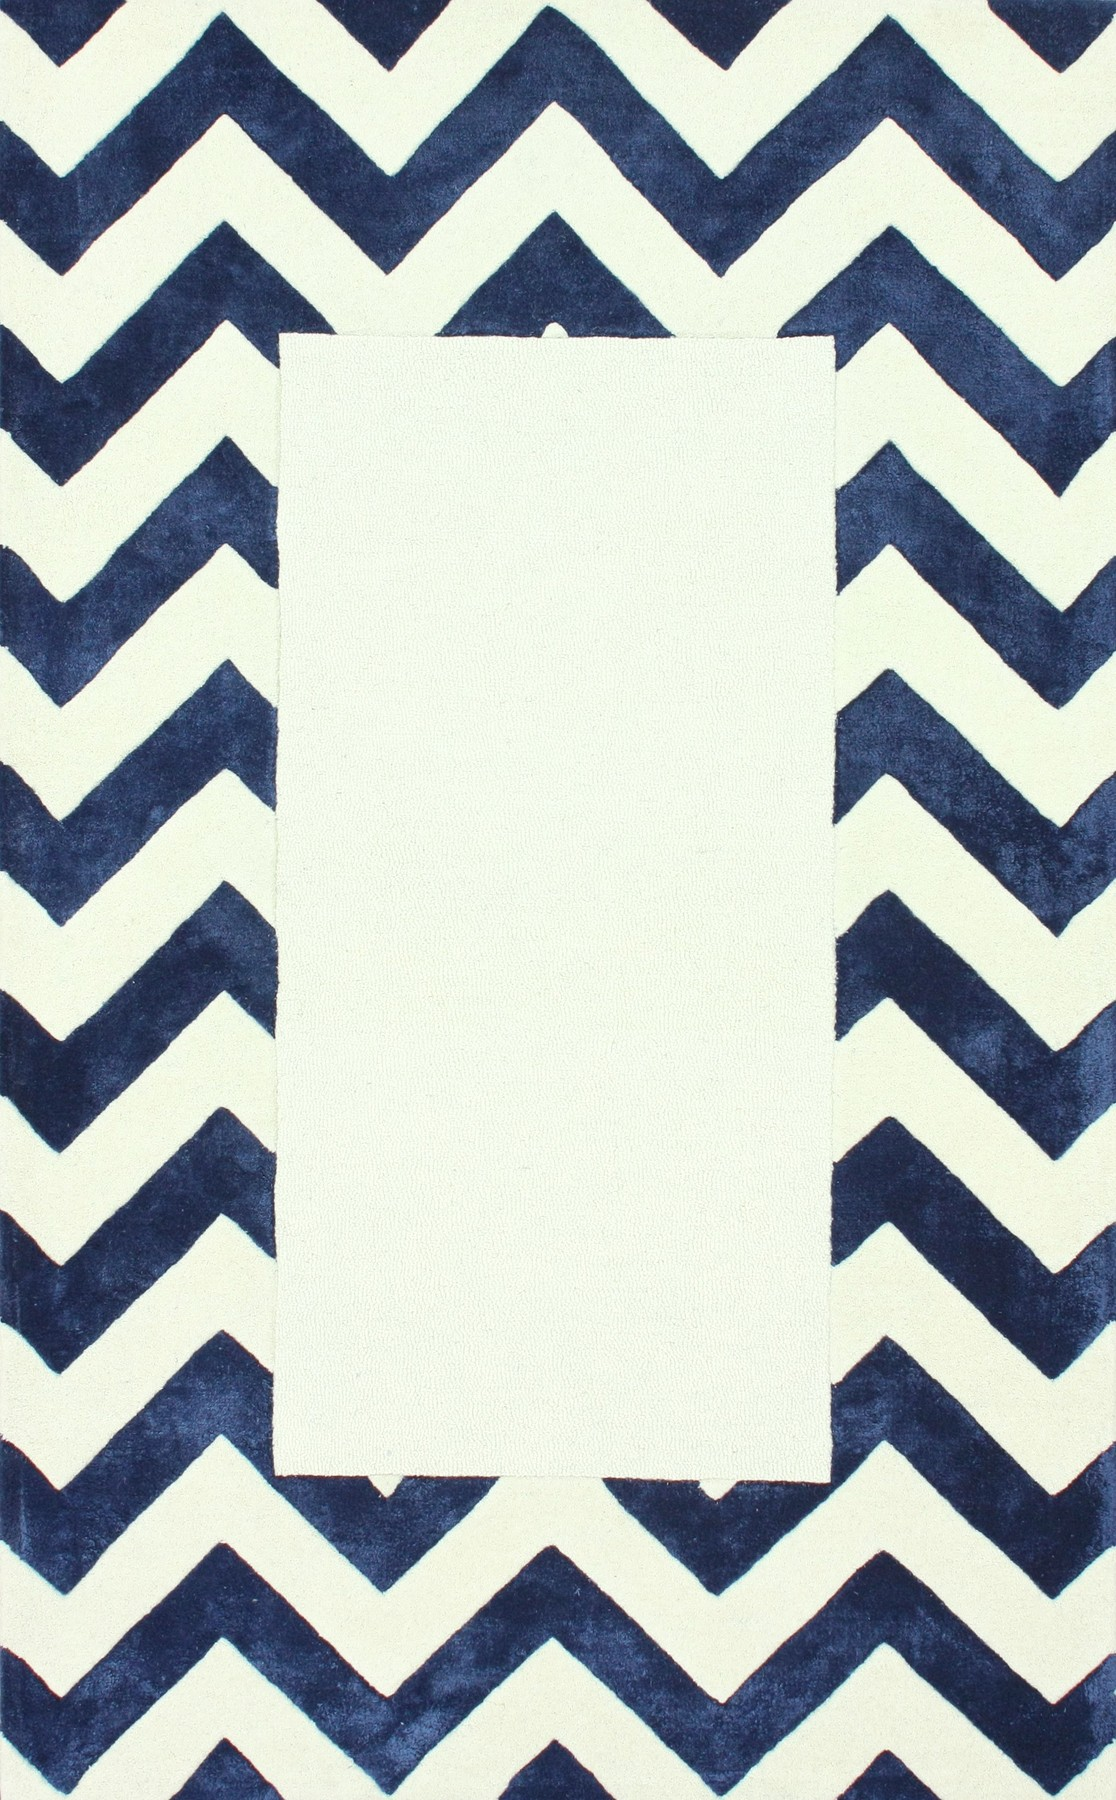 Chevron number 6 clipart clipart Chevron number 6 clipart - ClipartFest clipart